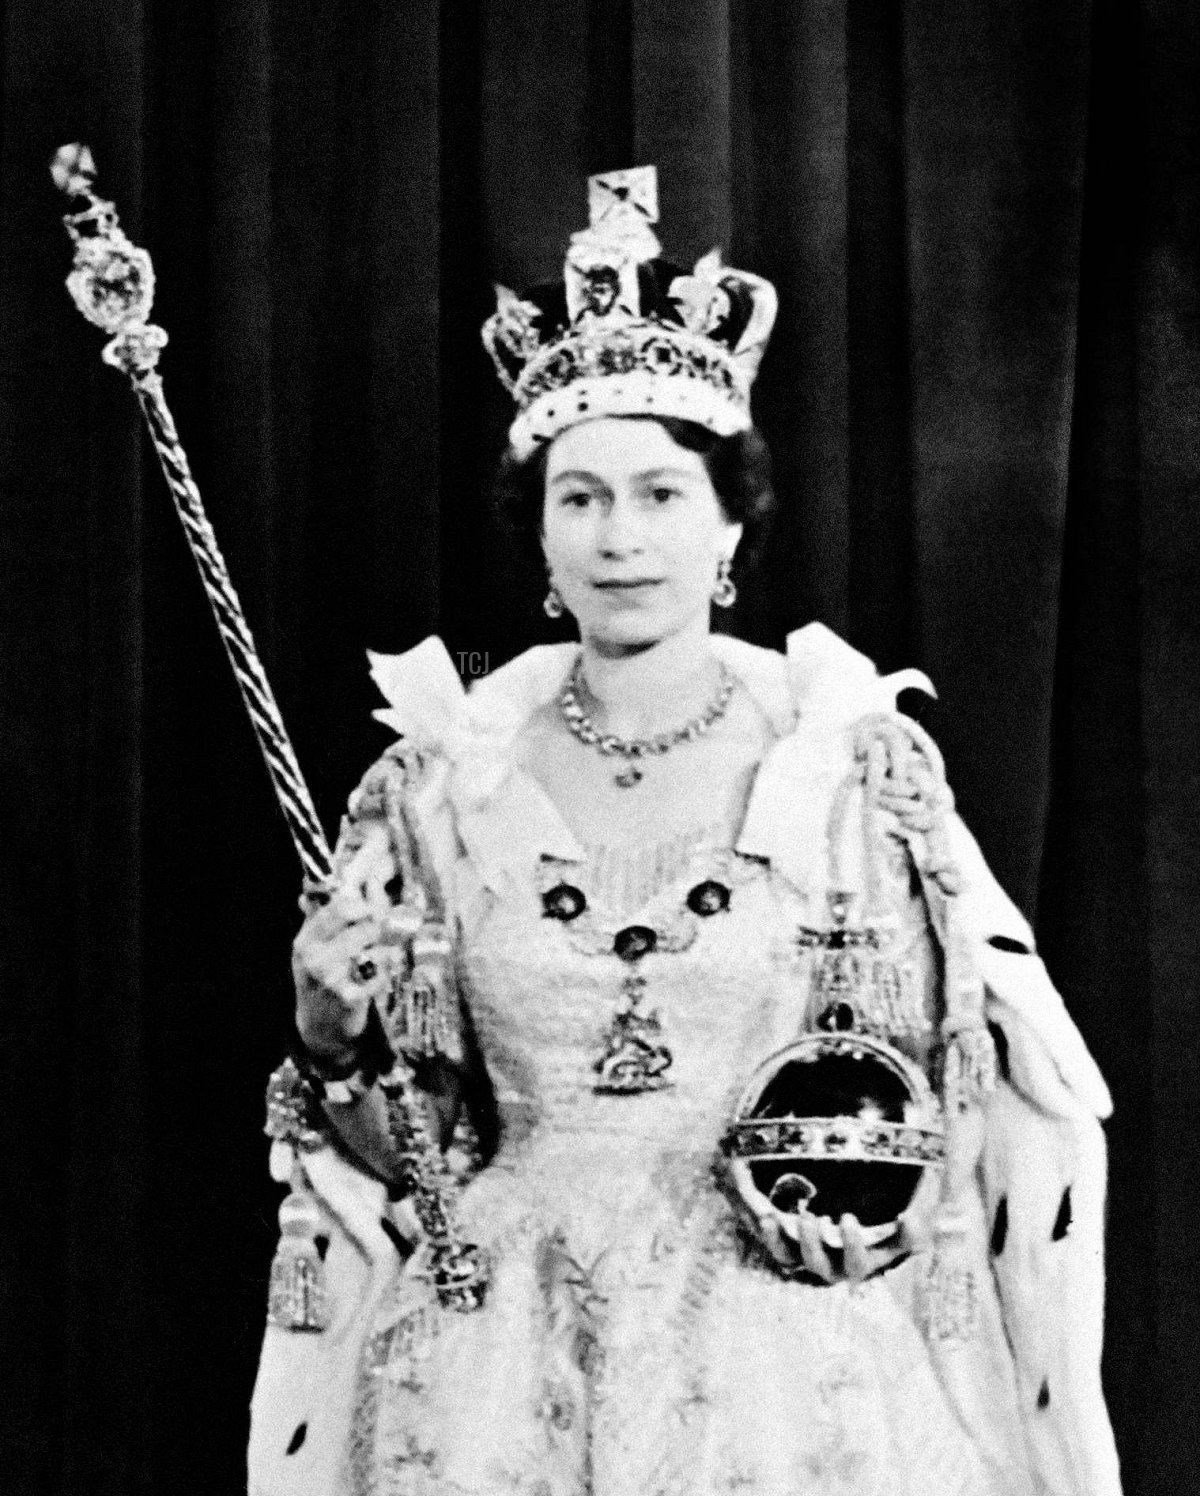 Portrait taken on June 2, 1953 shows Britain Queen Elizabeth II during her coronation, which was the first to be televised